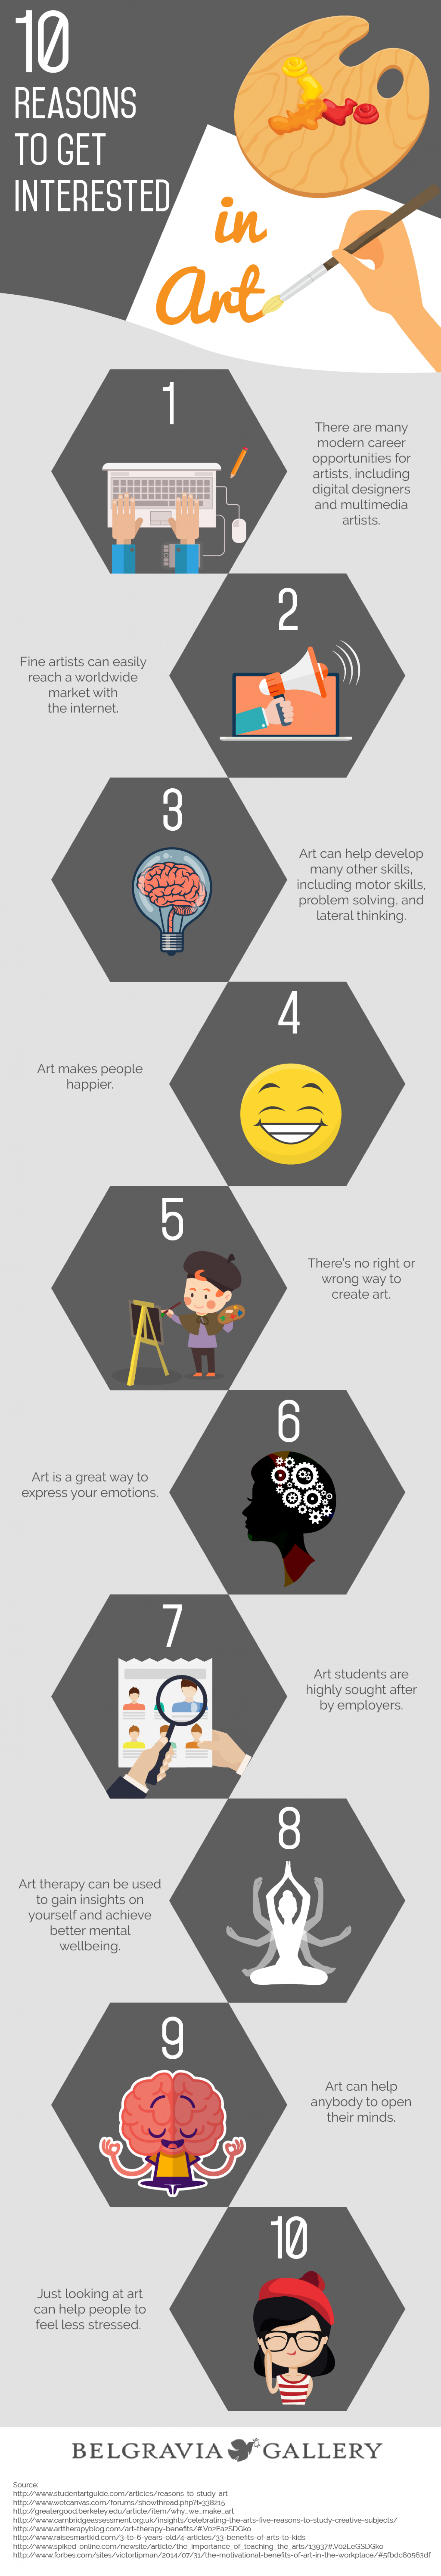 10 Reasons to get interested in Art Infographic